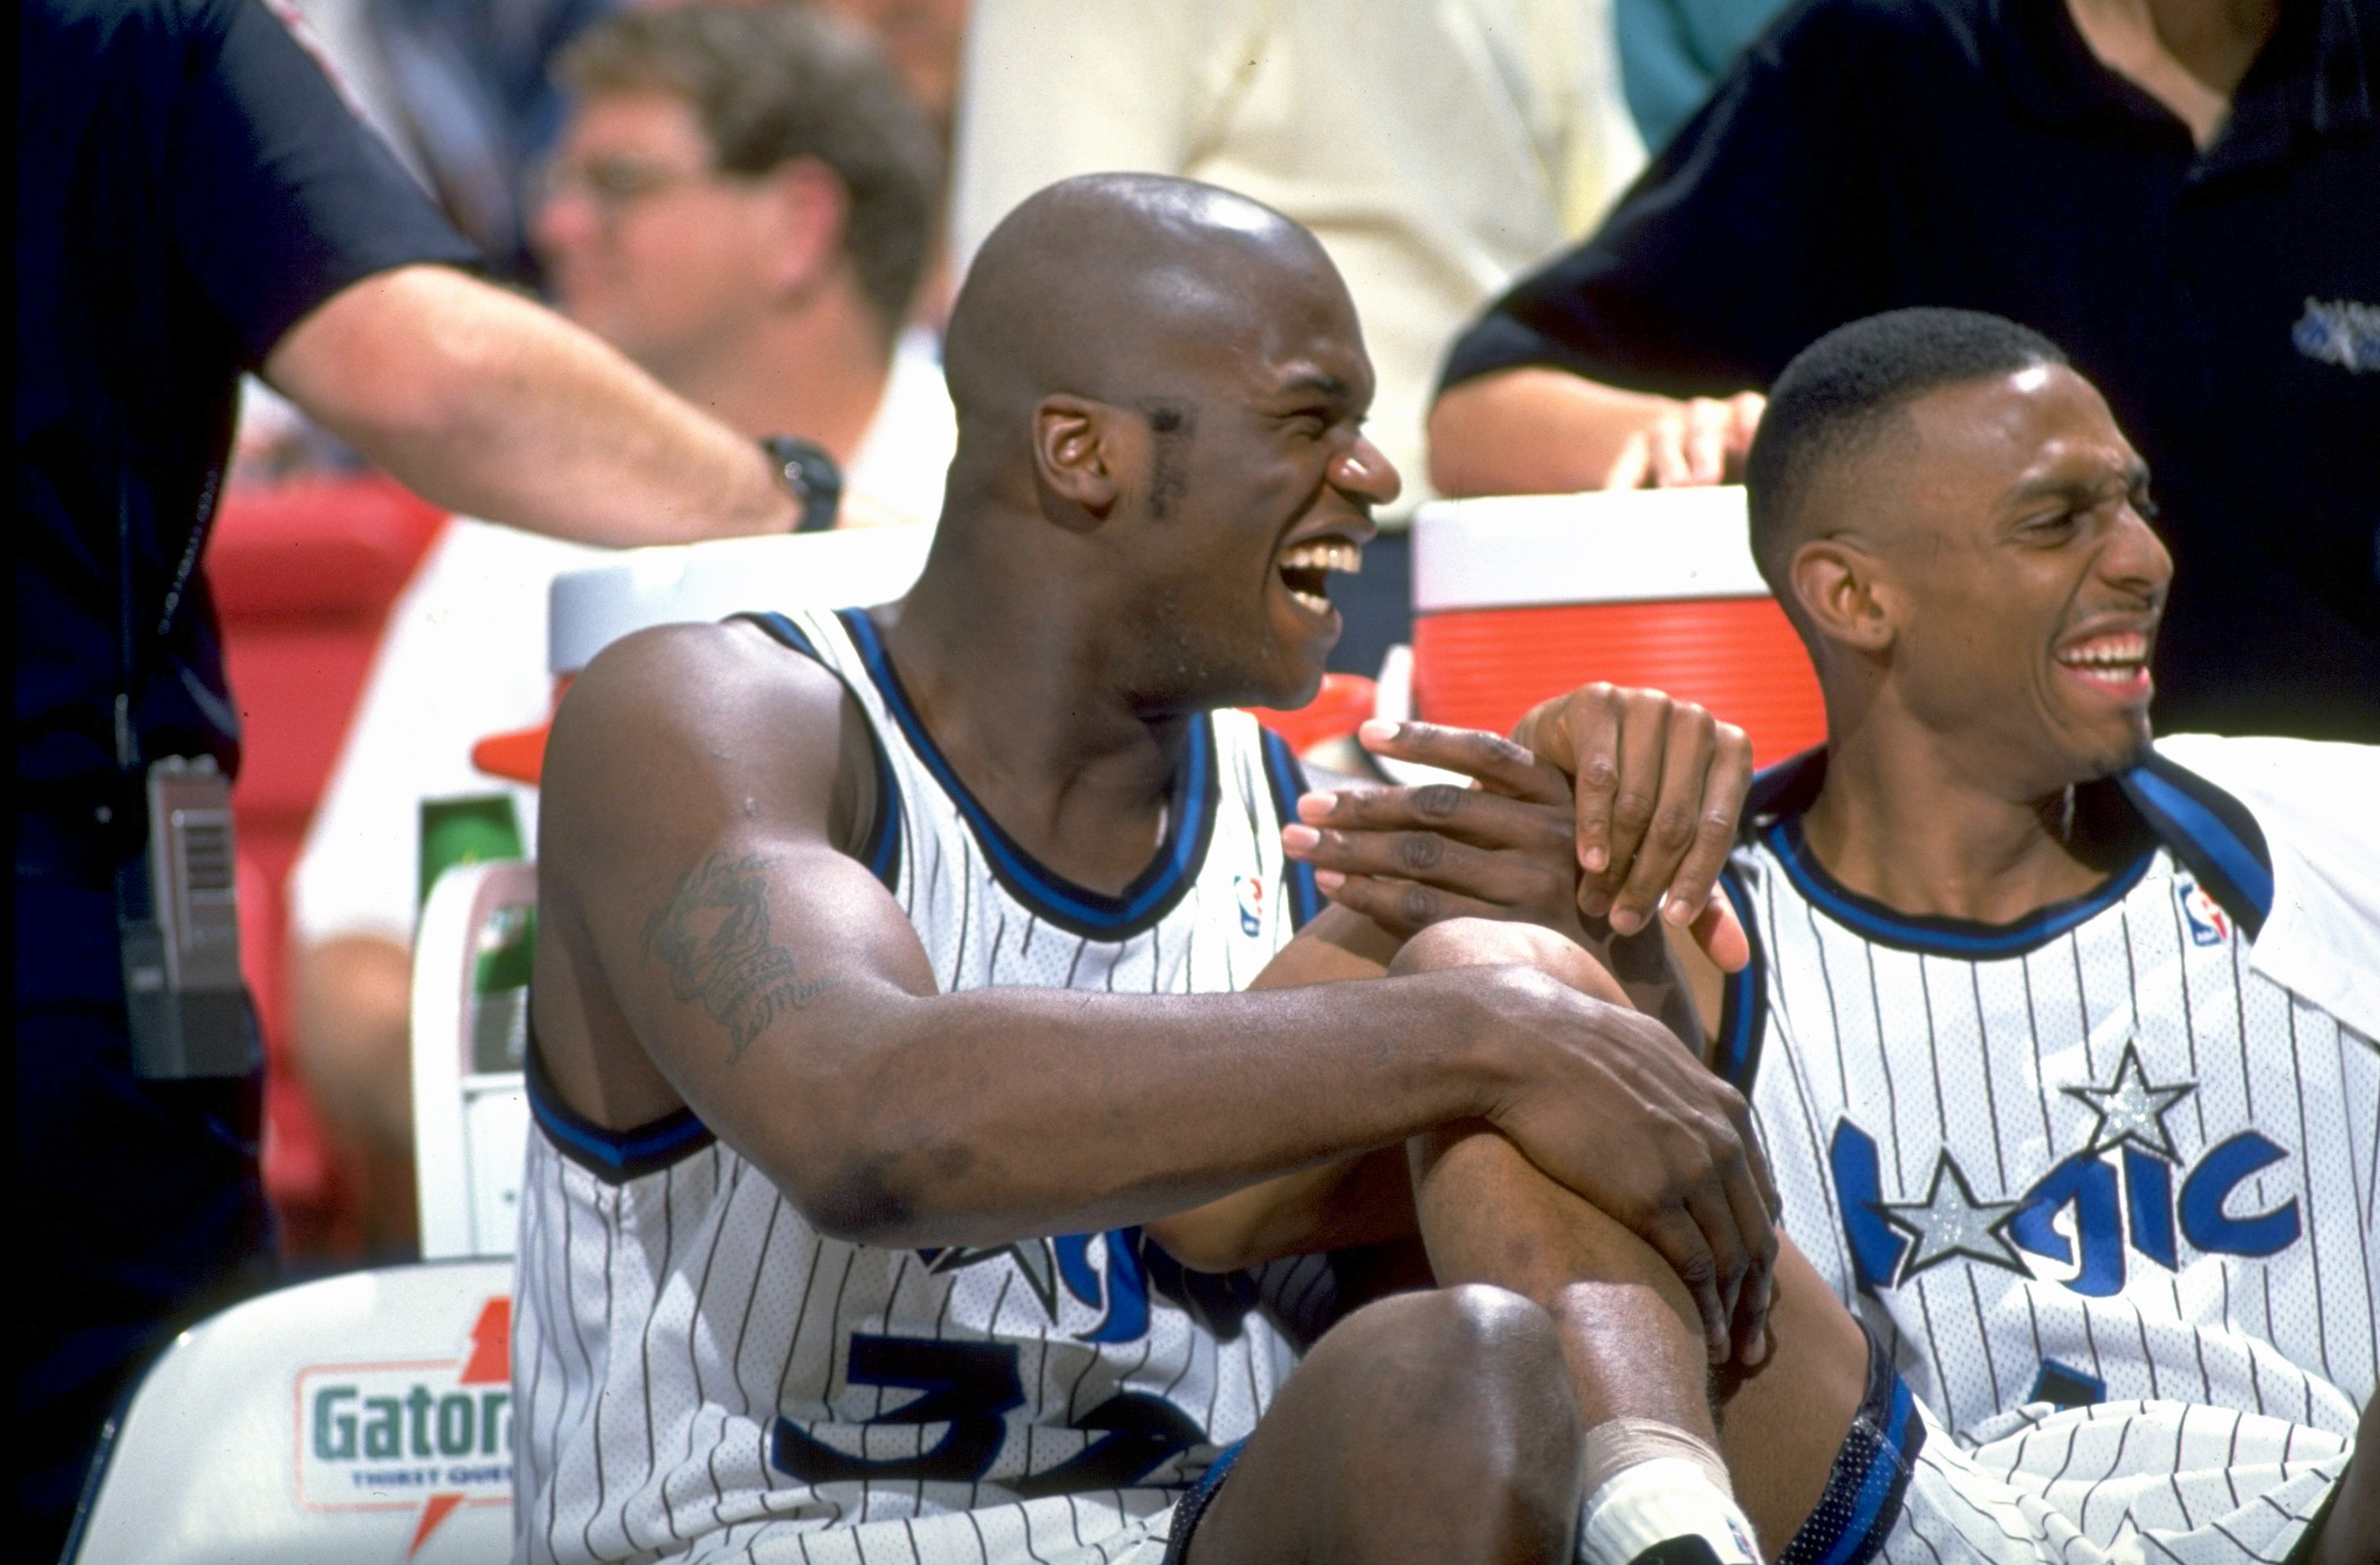 Basketball: Orlando Magic Shaquille O'Neal (L) and Anfernee Penny Hardaway (R) on bench during game vs Denver Nuggets at Orlando Arena. Orlando, FL 12/14/1994 CREDIT: Ben Van Hook (Photo by Ben Van Hook /Sports Illustrated/Getty Images) (Set Number: X47547 )